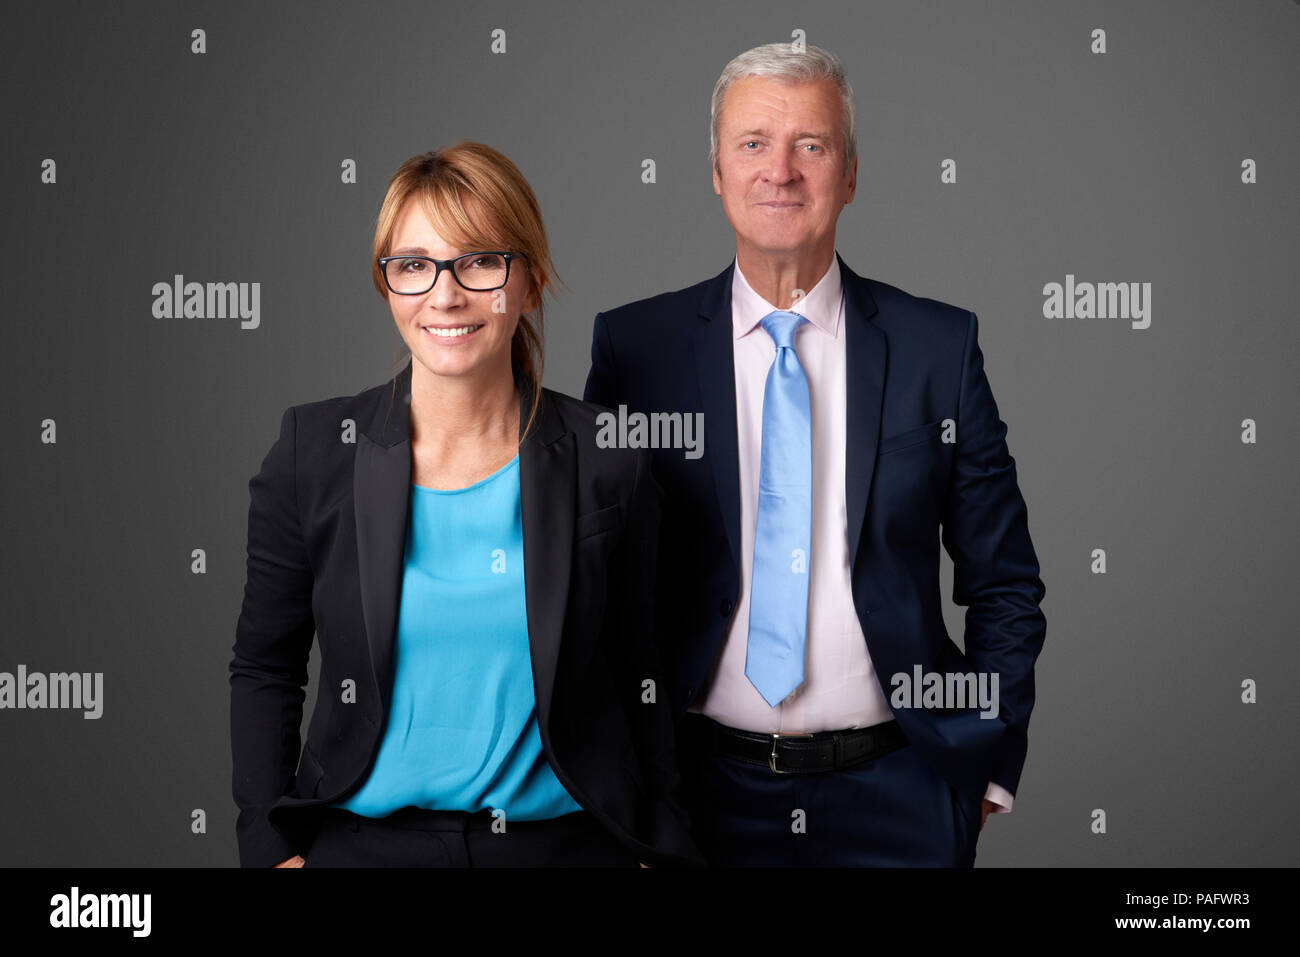 An attractive middle aged businesswoman and an exectuive professional man standing at isolated background. - Stock Image